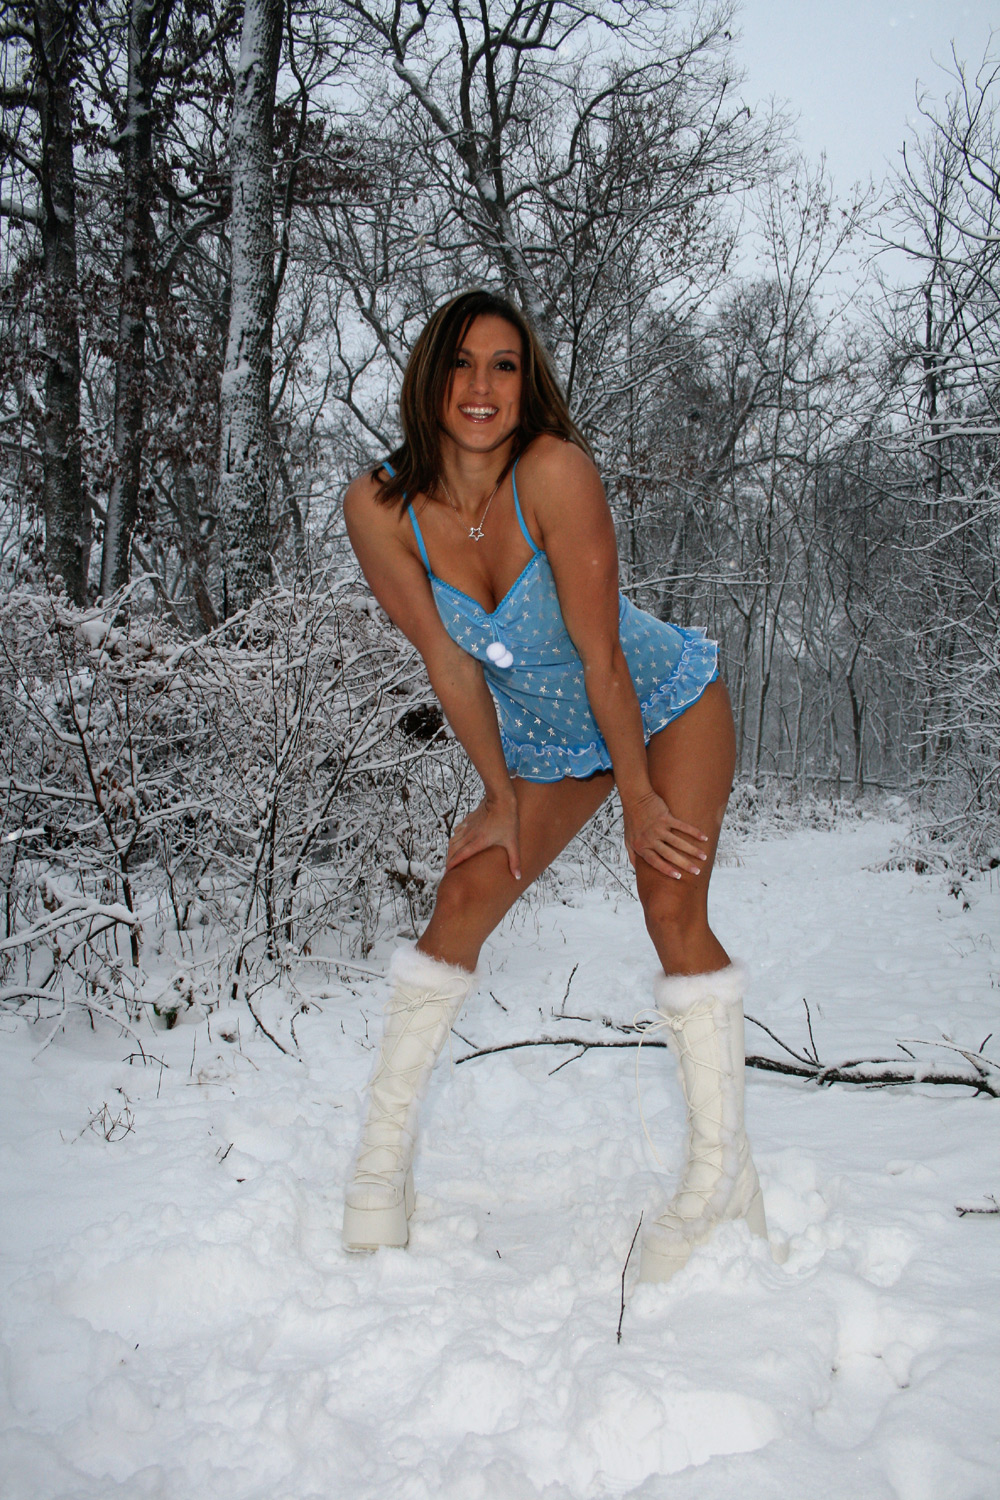 Naked girls snow bunnies very pity